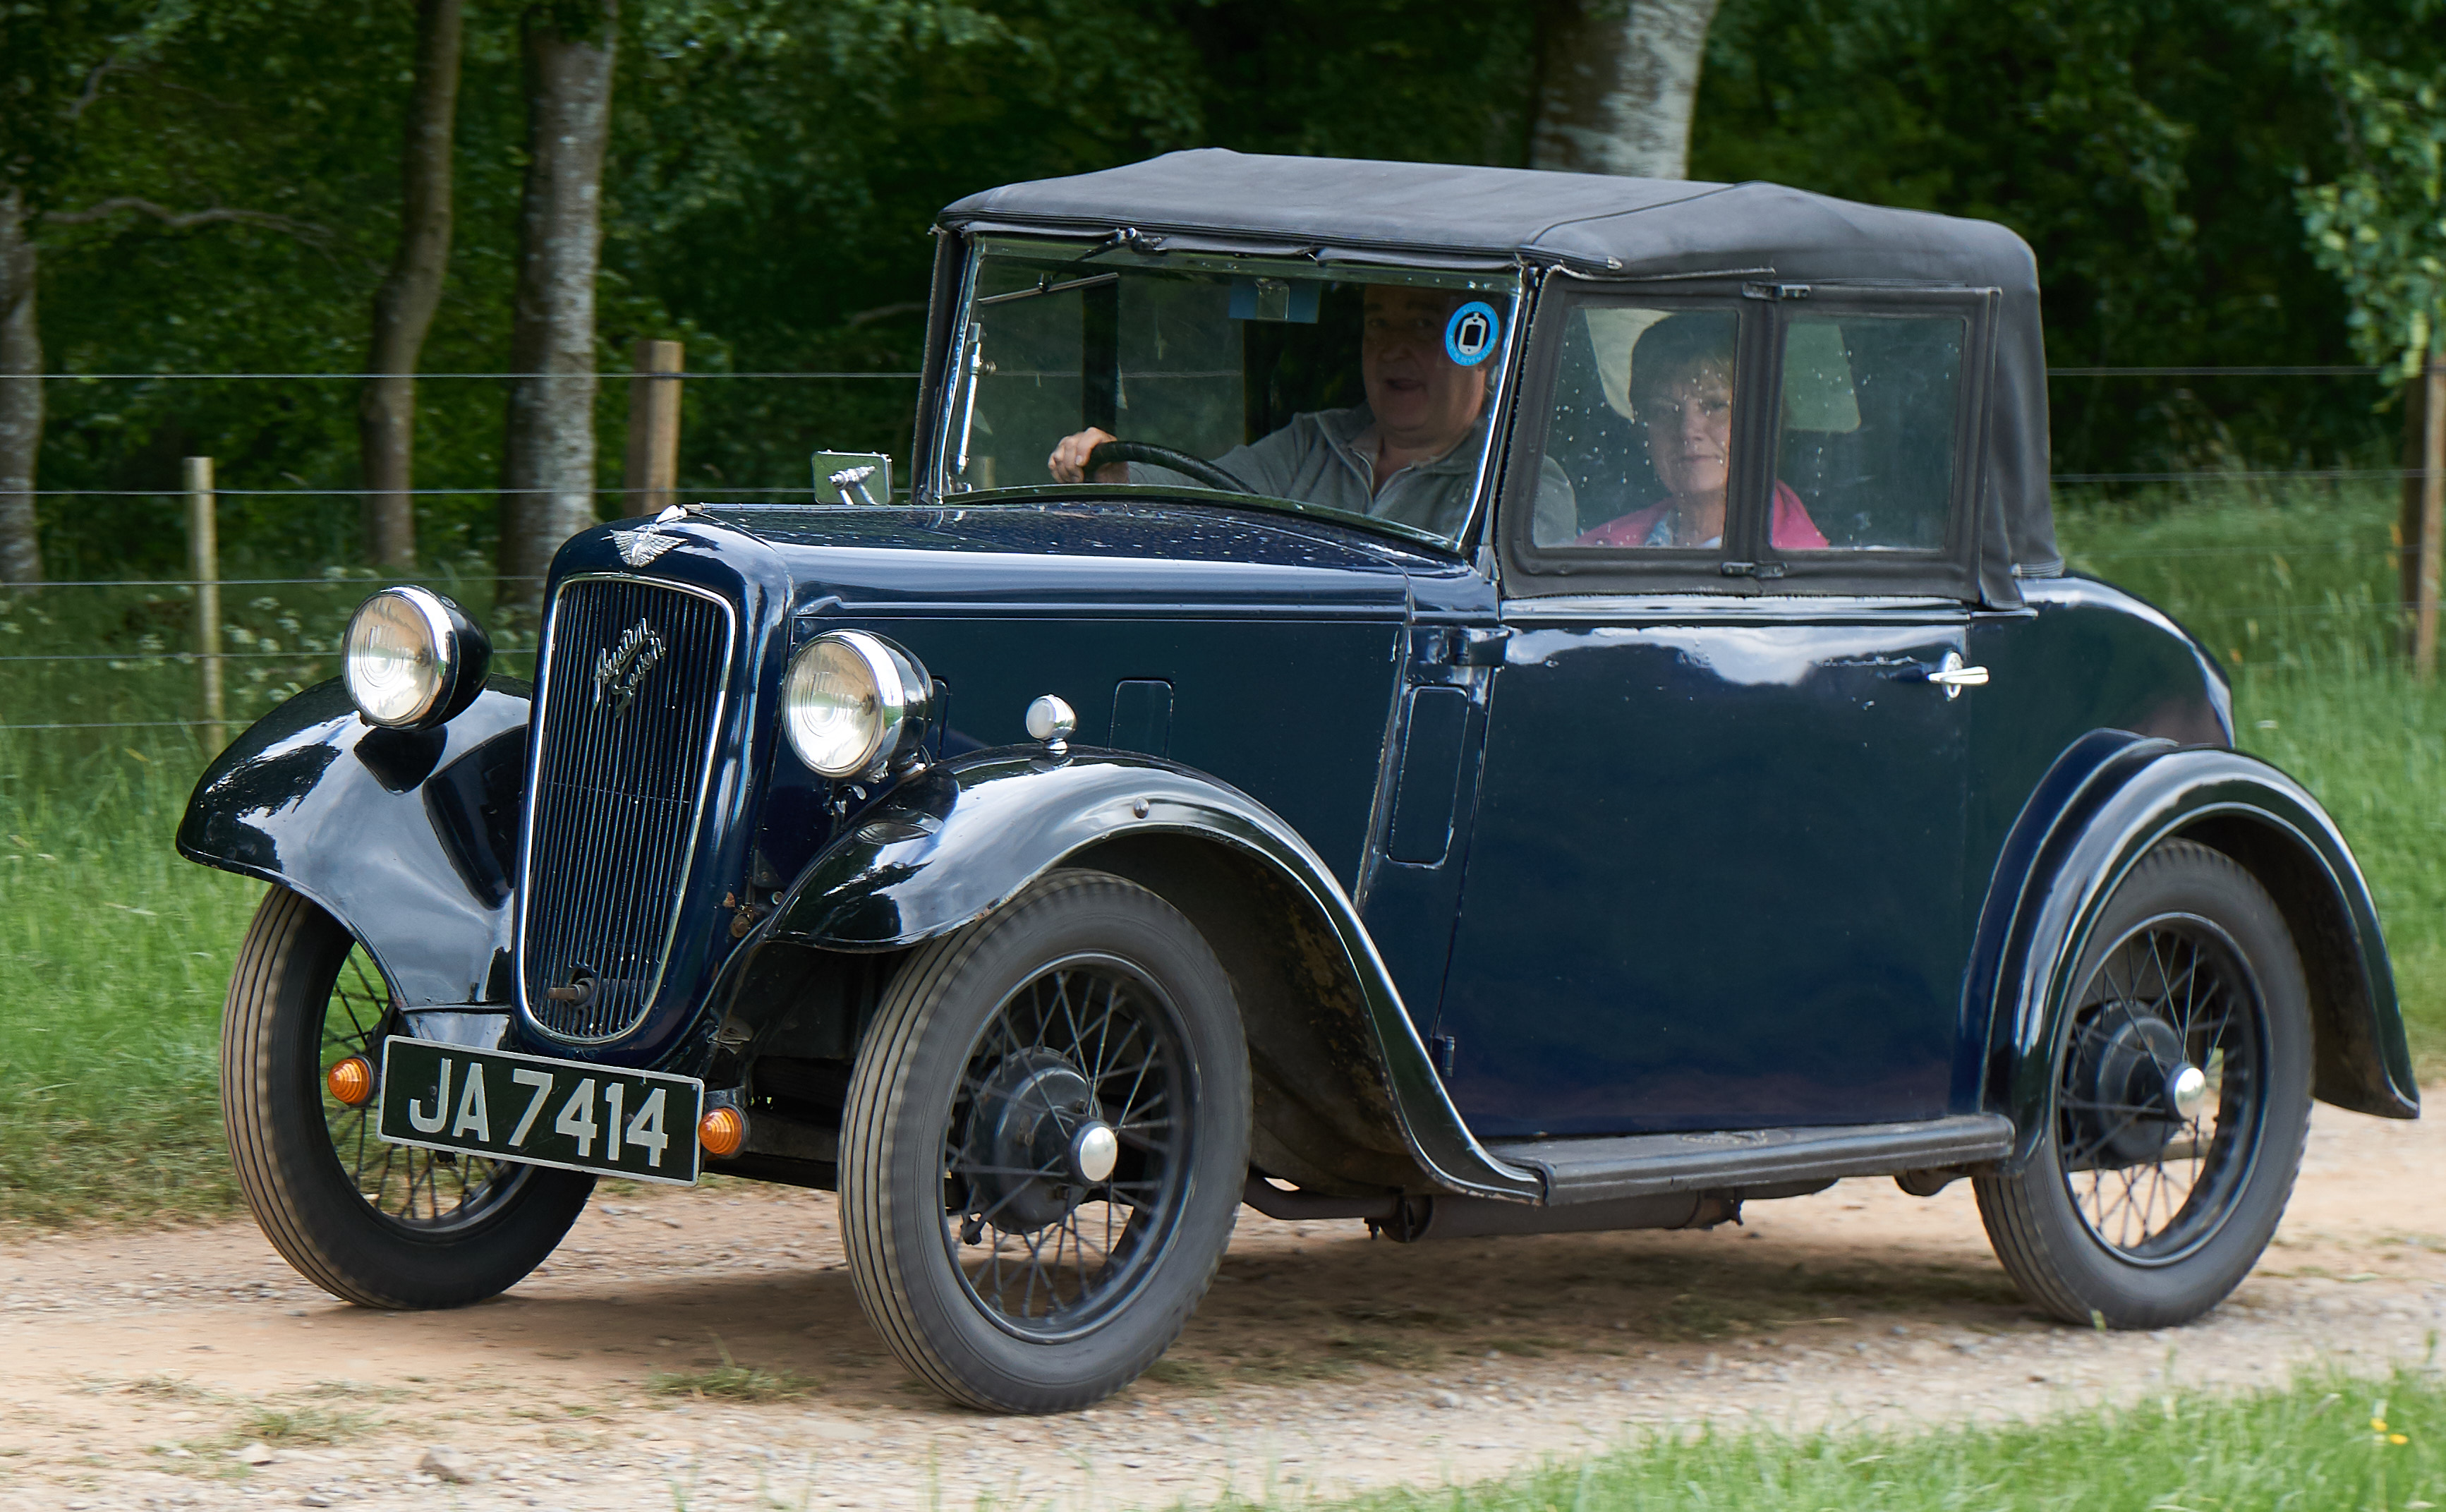 1936 Austin 7 Opal, Car, HQ Photo